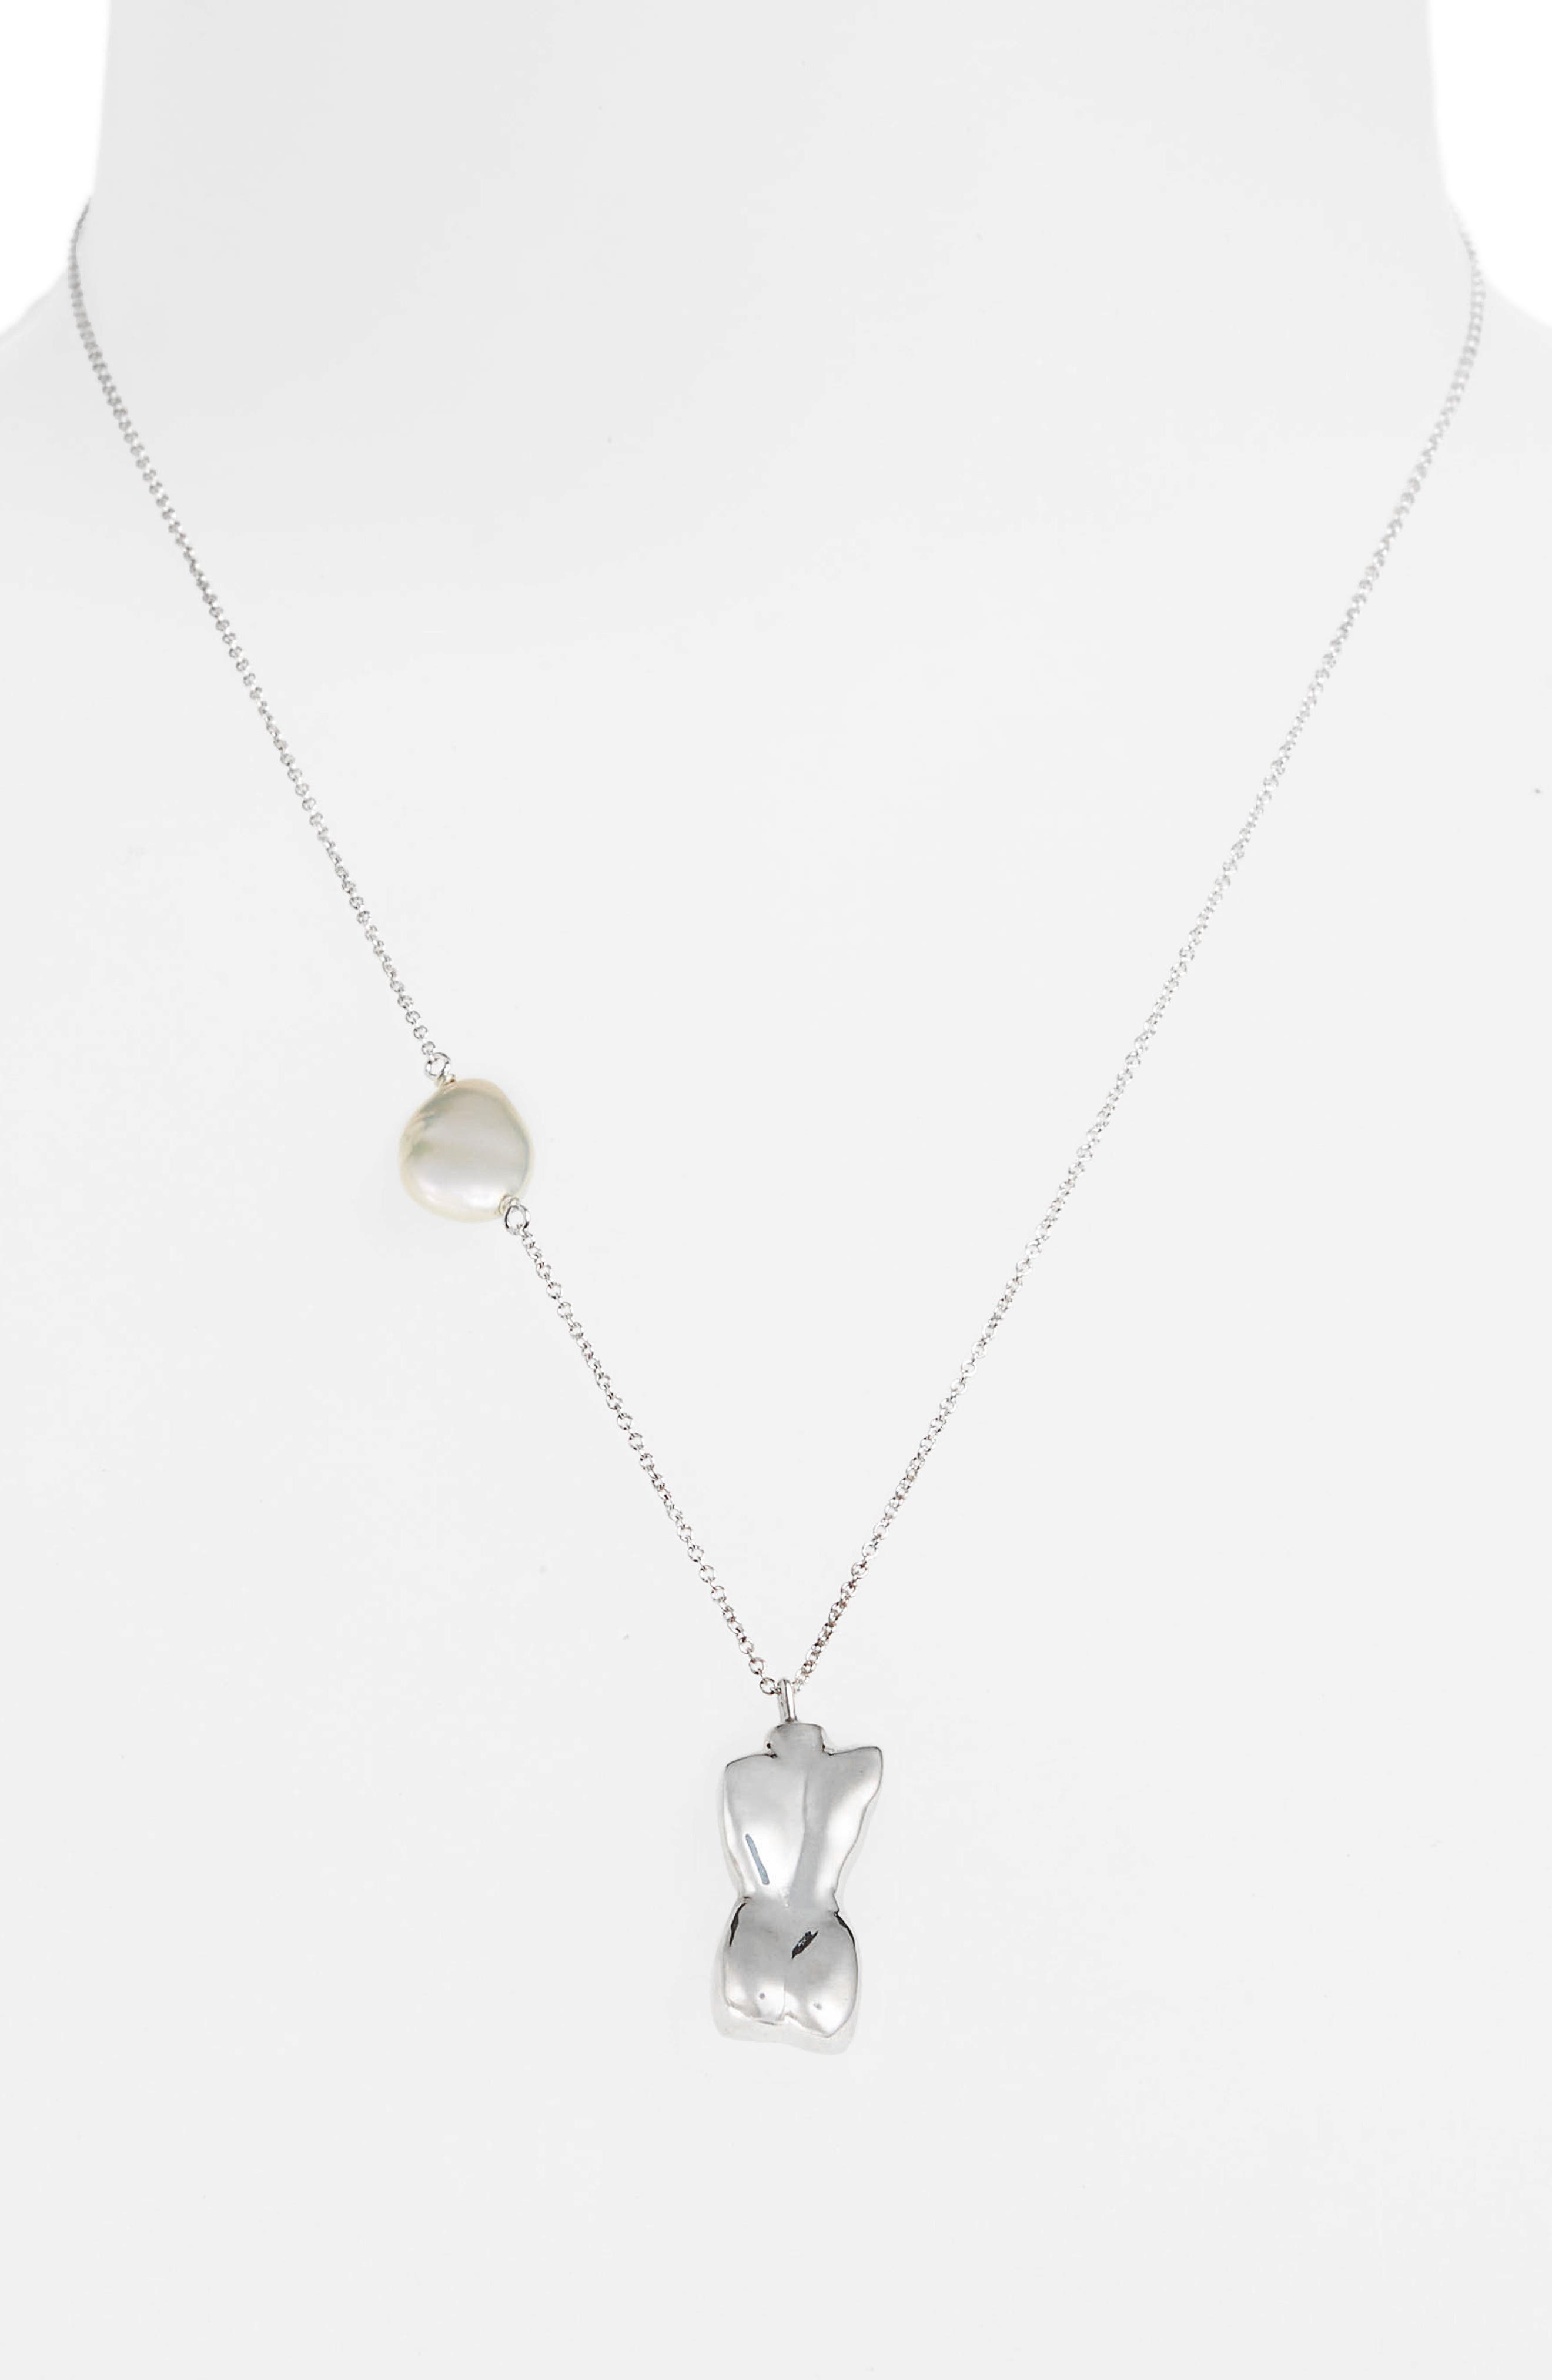 Bod Pendant Necklace,                         Main,                         color, STERLING SILVER/ WHITE KESHI